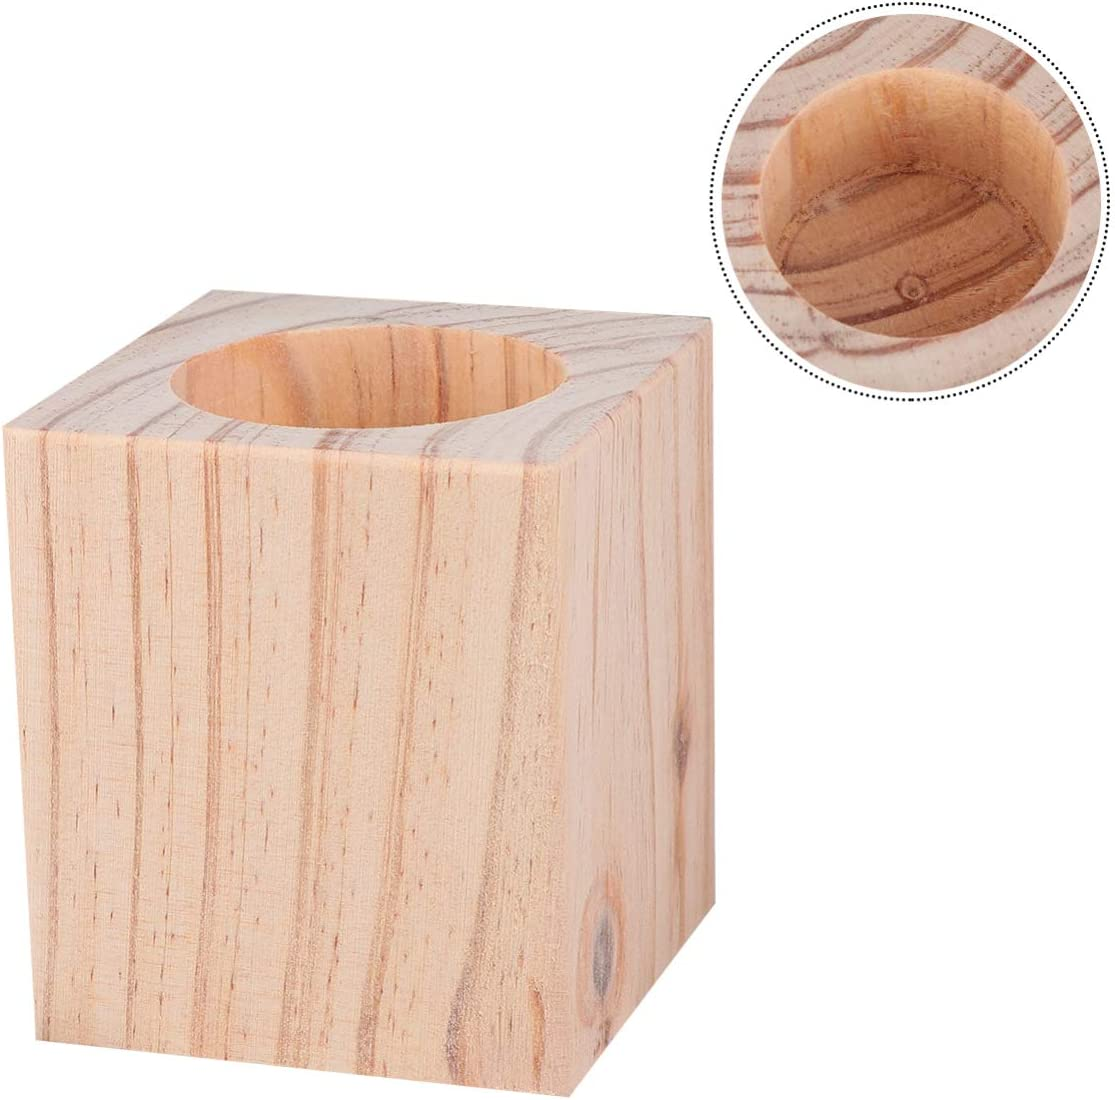 BESPORTBLE Bed Risers Furniture Risers Lifts Height 5cm Solid Natural Wood Risers for Bed Furniture Table Sofa Chair Risers with Non-Slip Recessed Hole